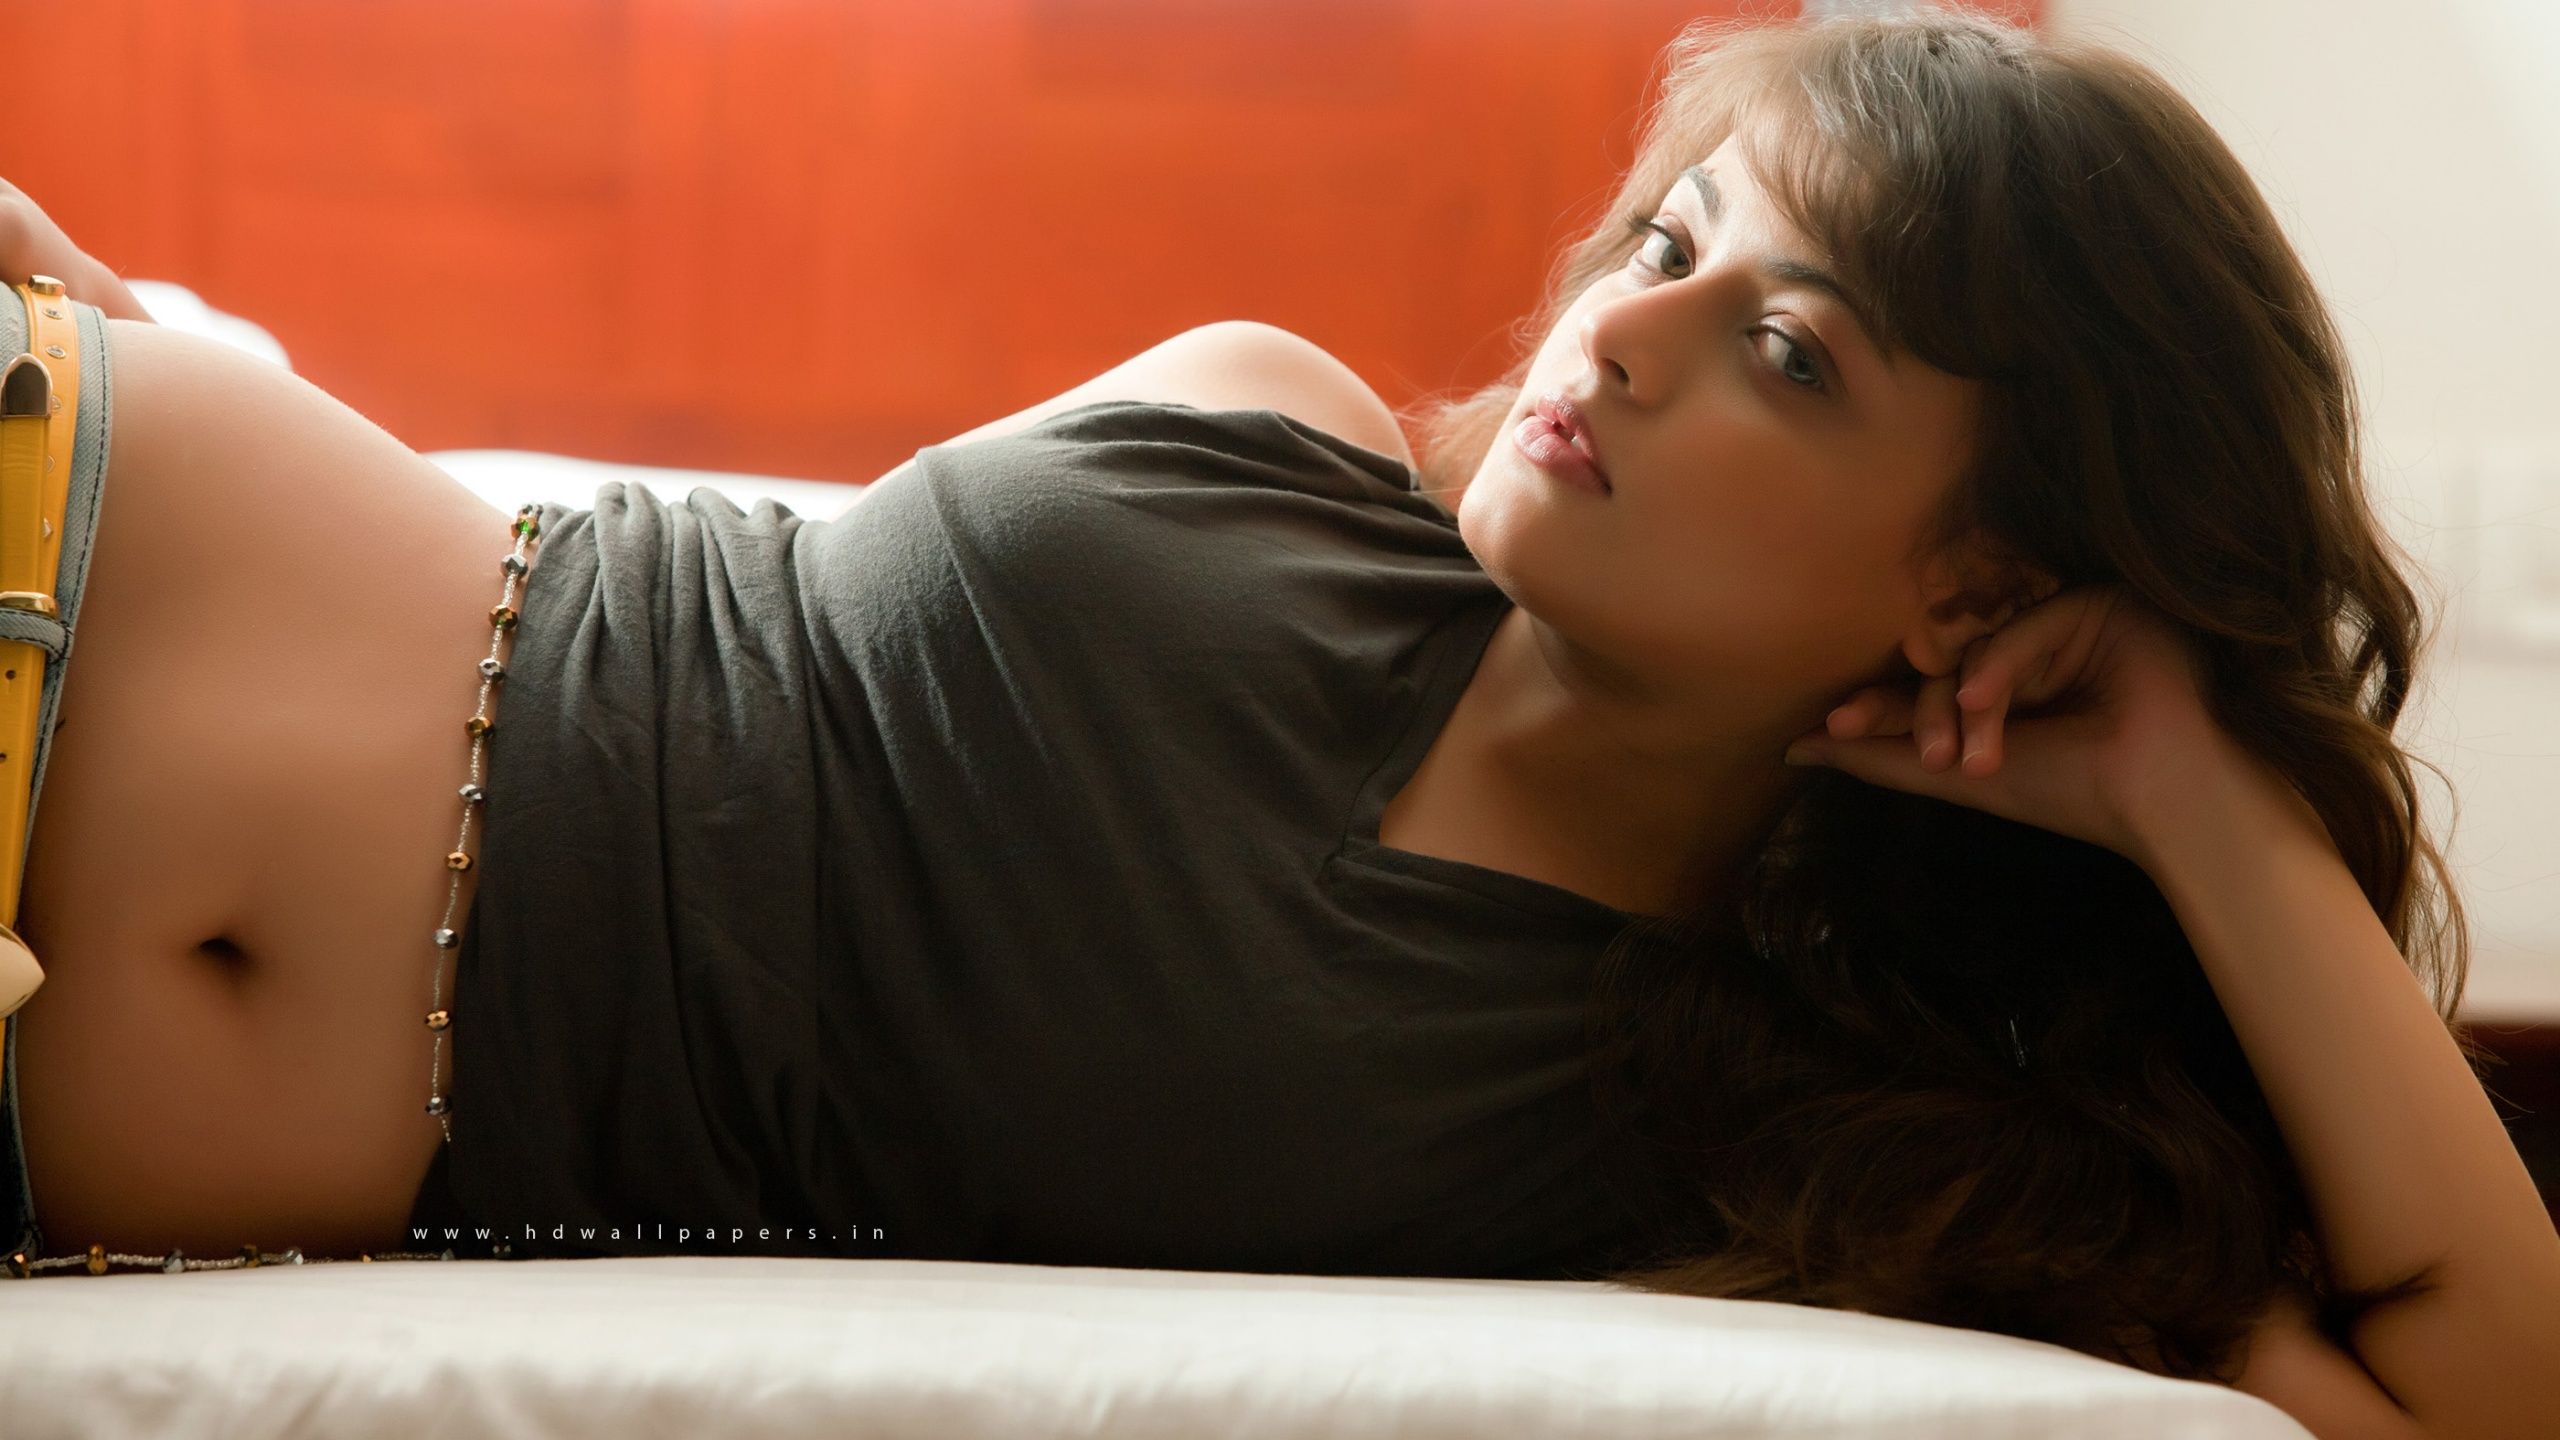 sneha ullal hot 2012 wallpapers in jpg format for free download